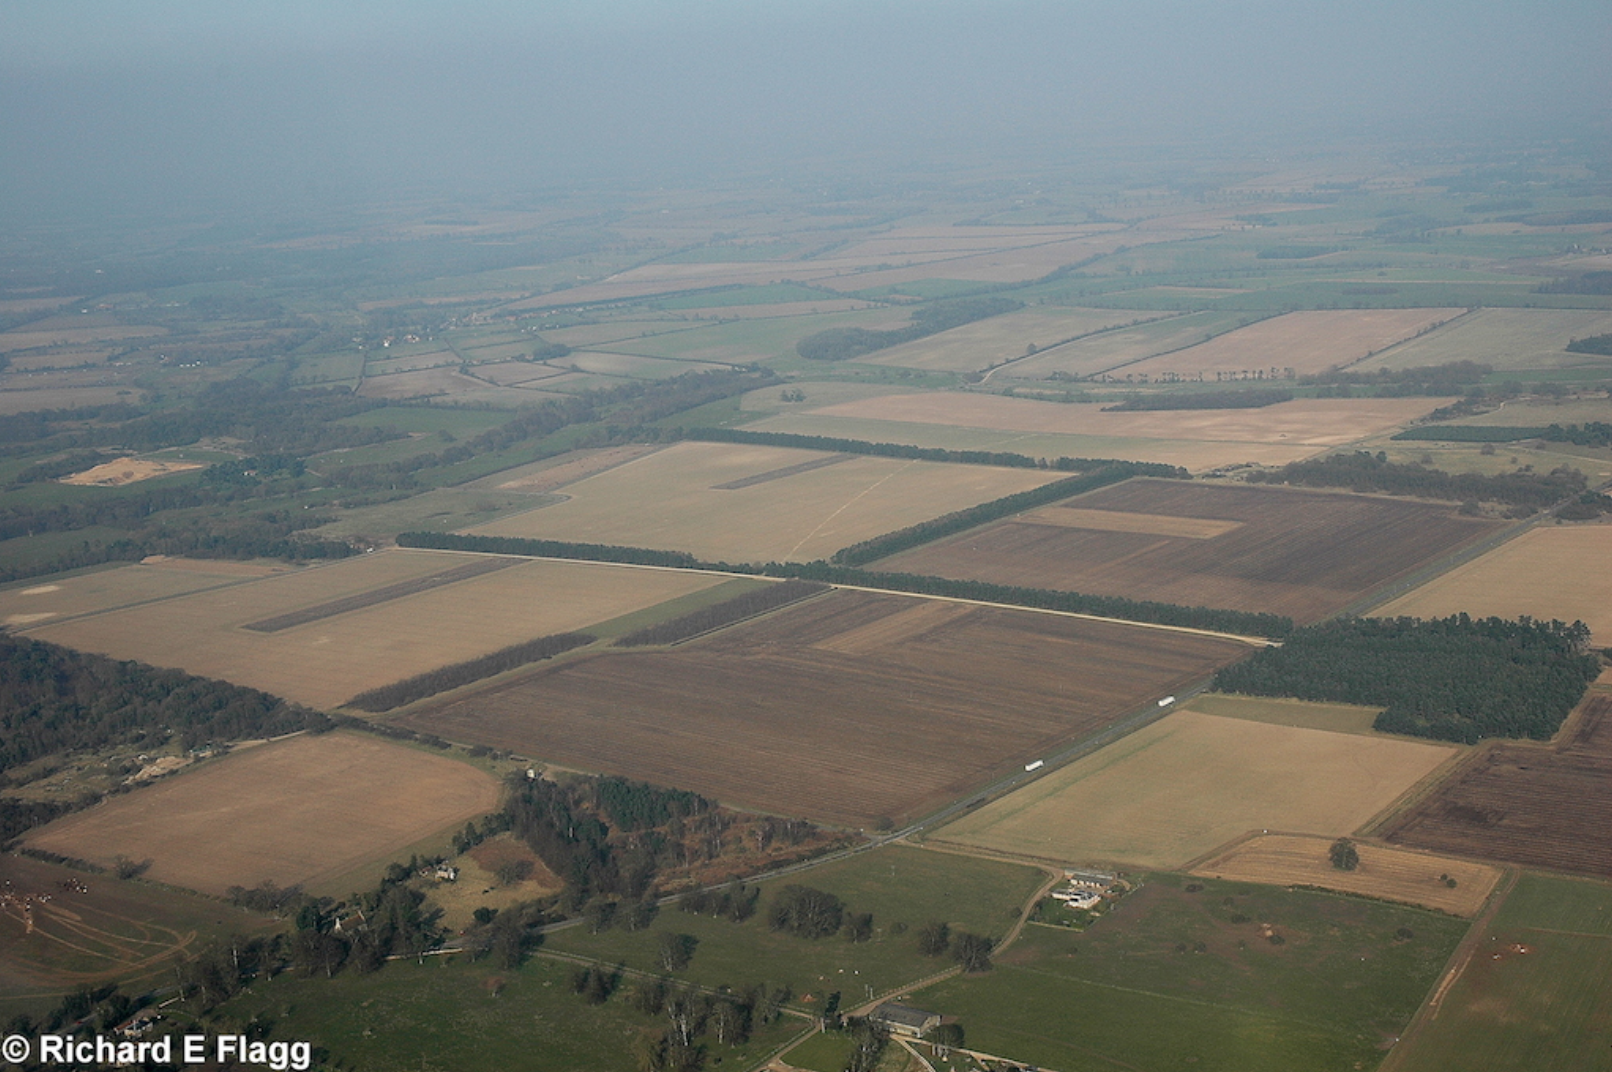 006Aerial View 2 of RAF Bodney Airfield - 21 March 2009.png